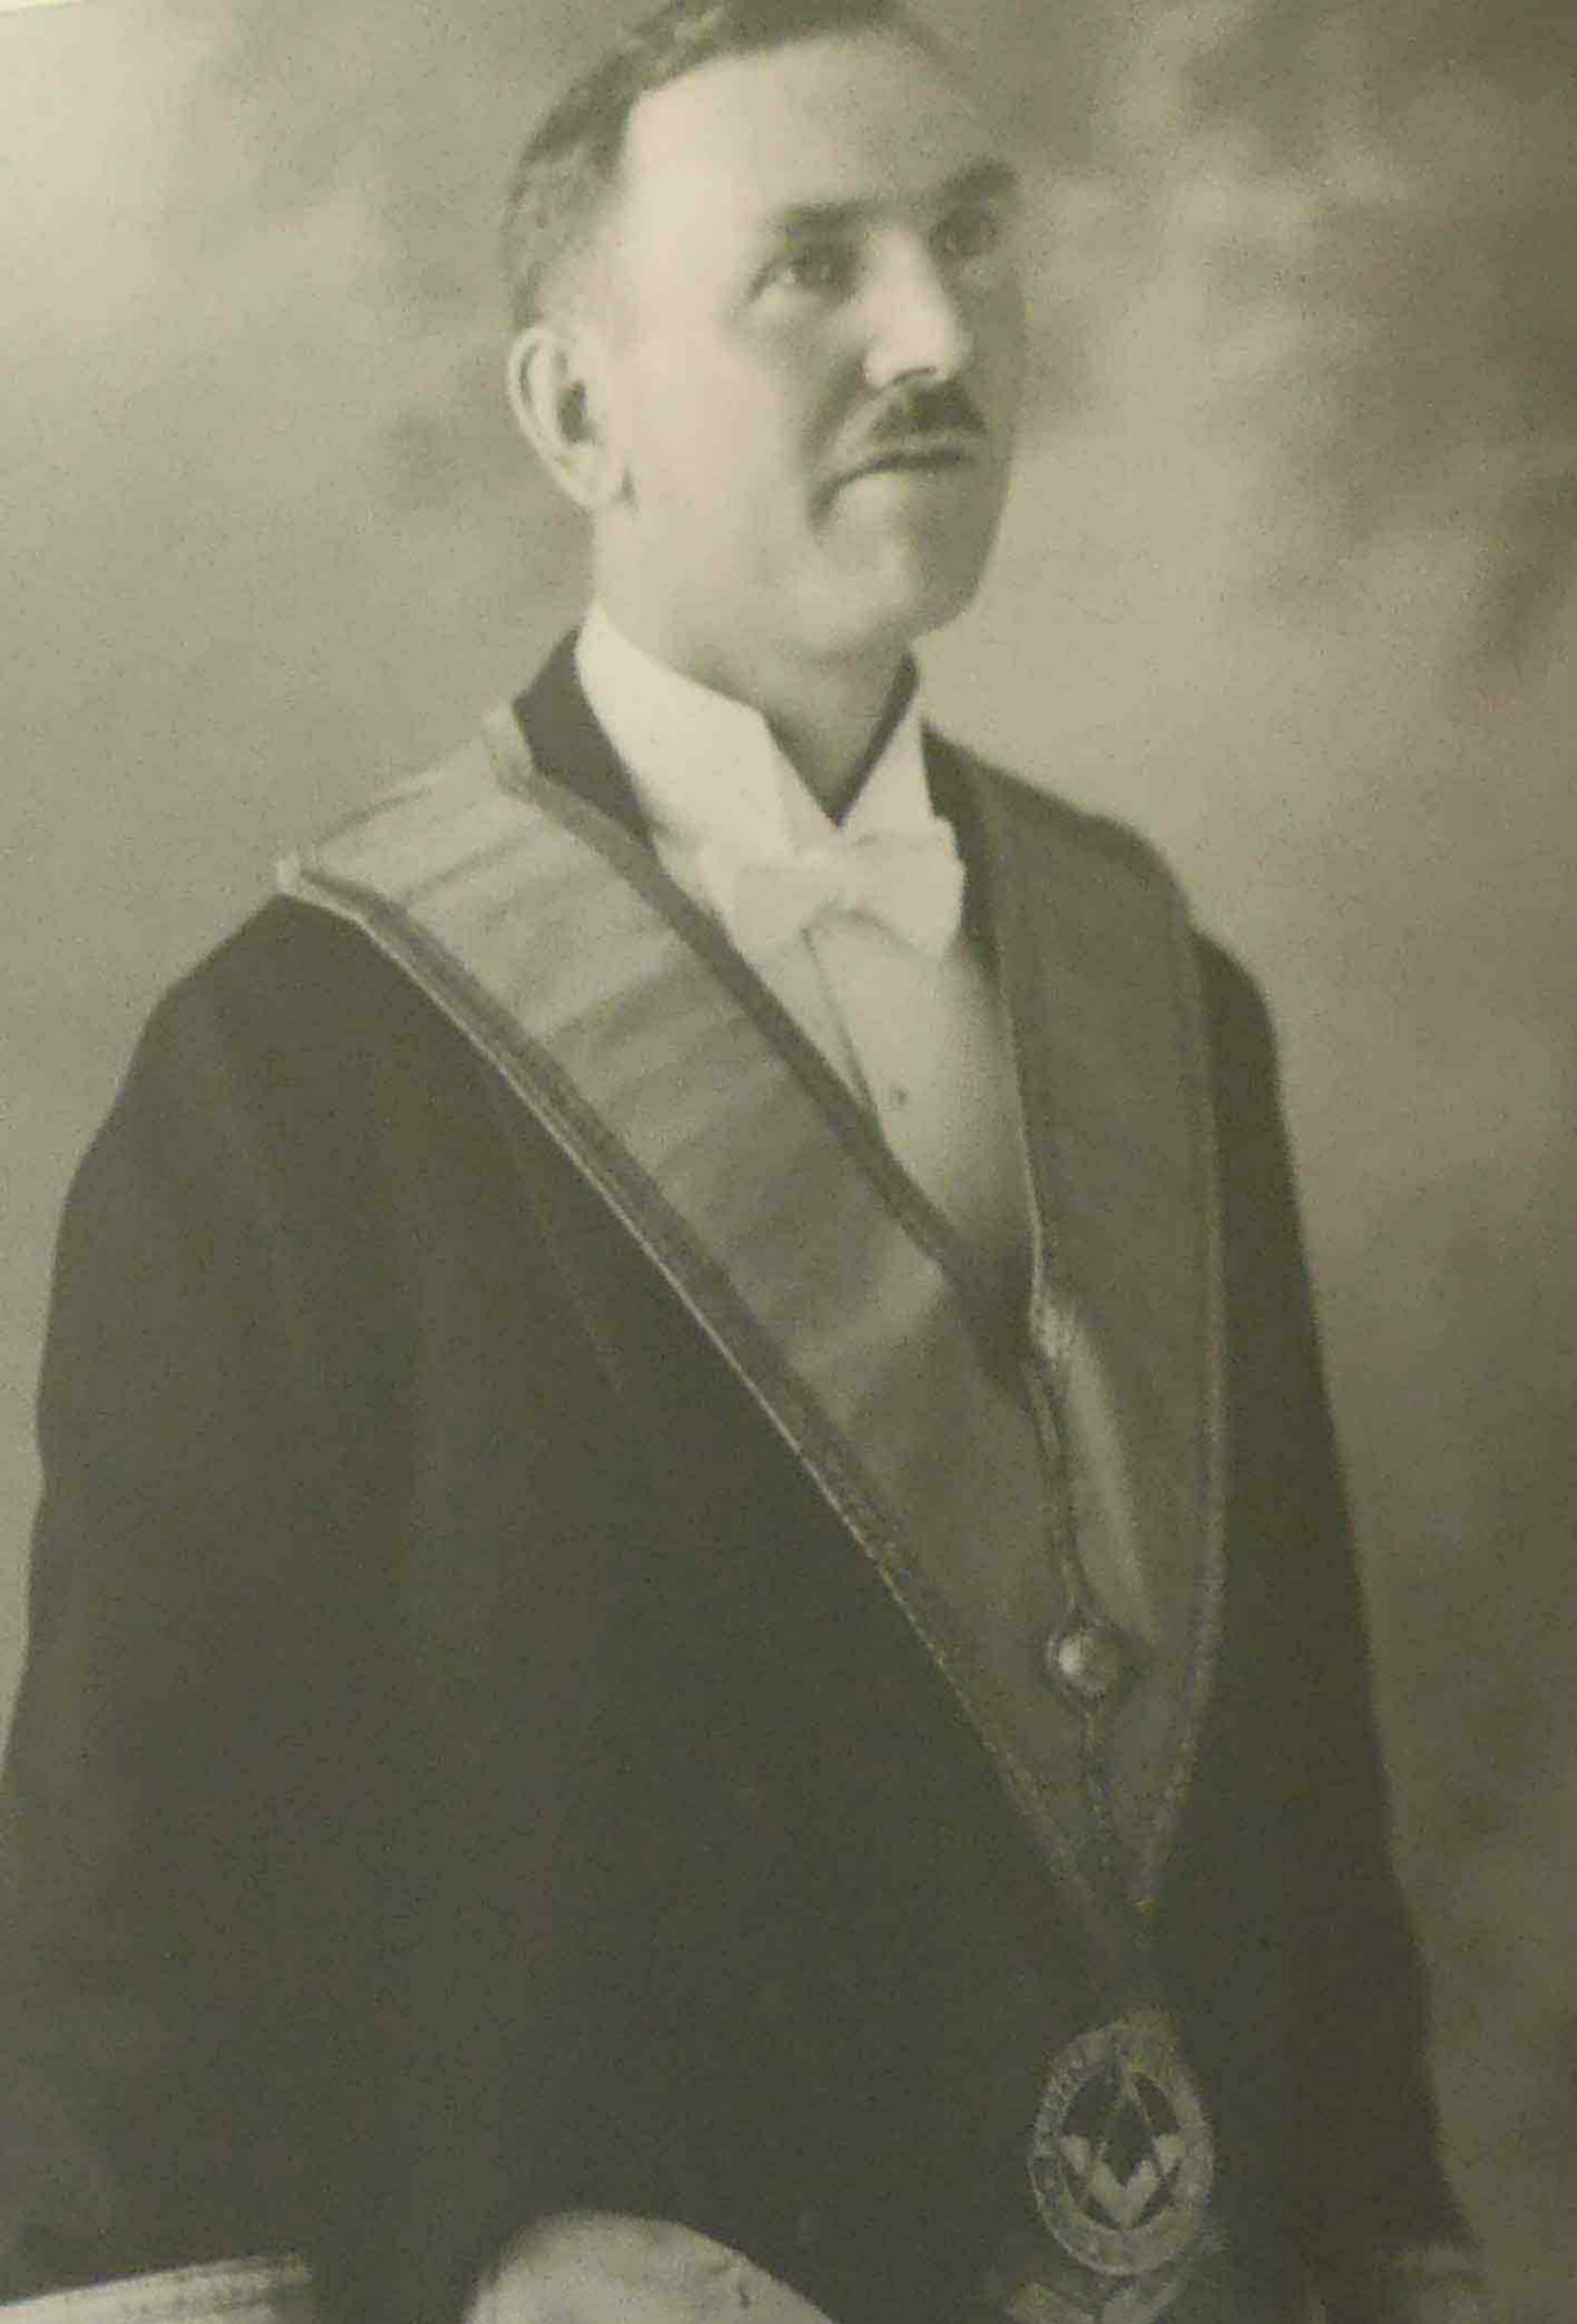 Hugh George Savage in Masonic regalia, circa 1922. Hugh Savage was the owner and publisher of the Cowichan Leader newspaper